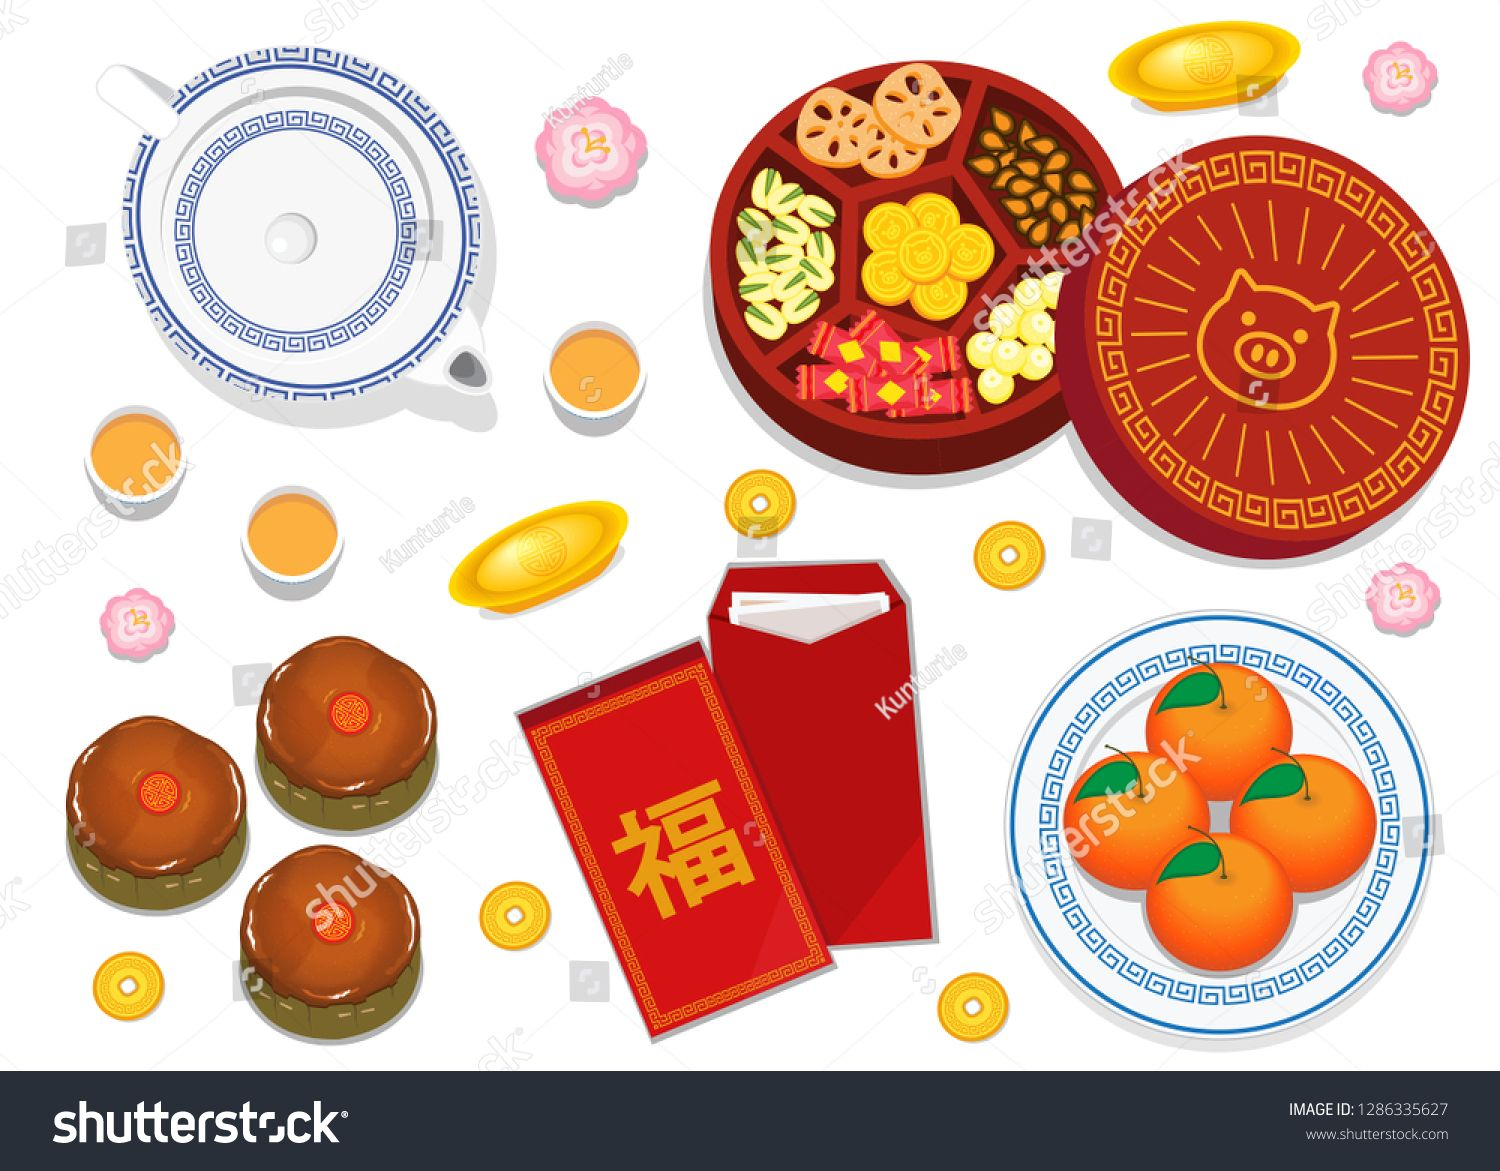 Illustration Vector Flat Cartoon Of Happy Chinese New Year Concept Isolated Table Decoration Food Sweet Chinese New Year Food Food Illustrations Food Cartoon